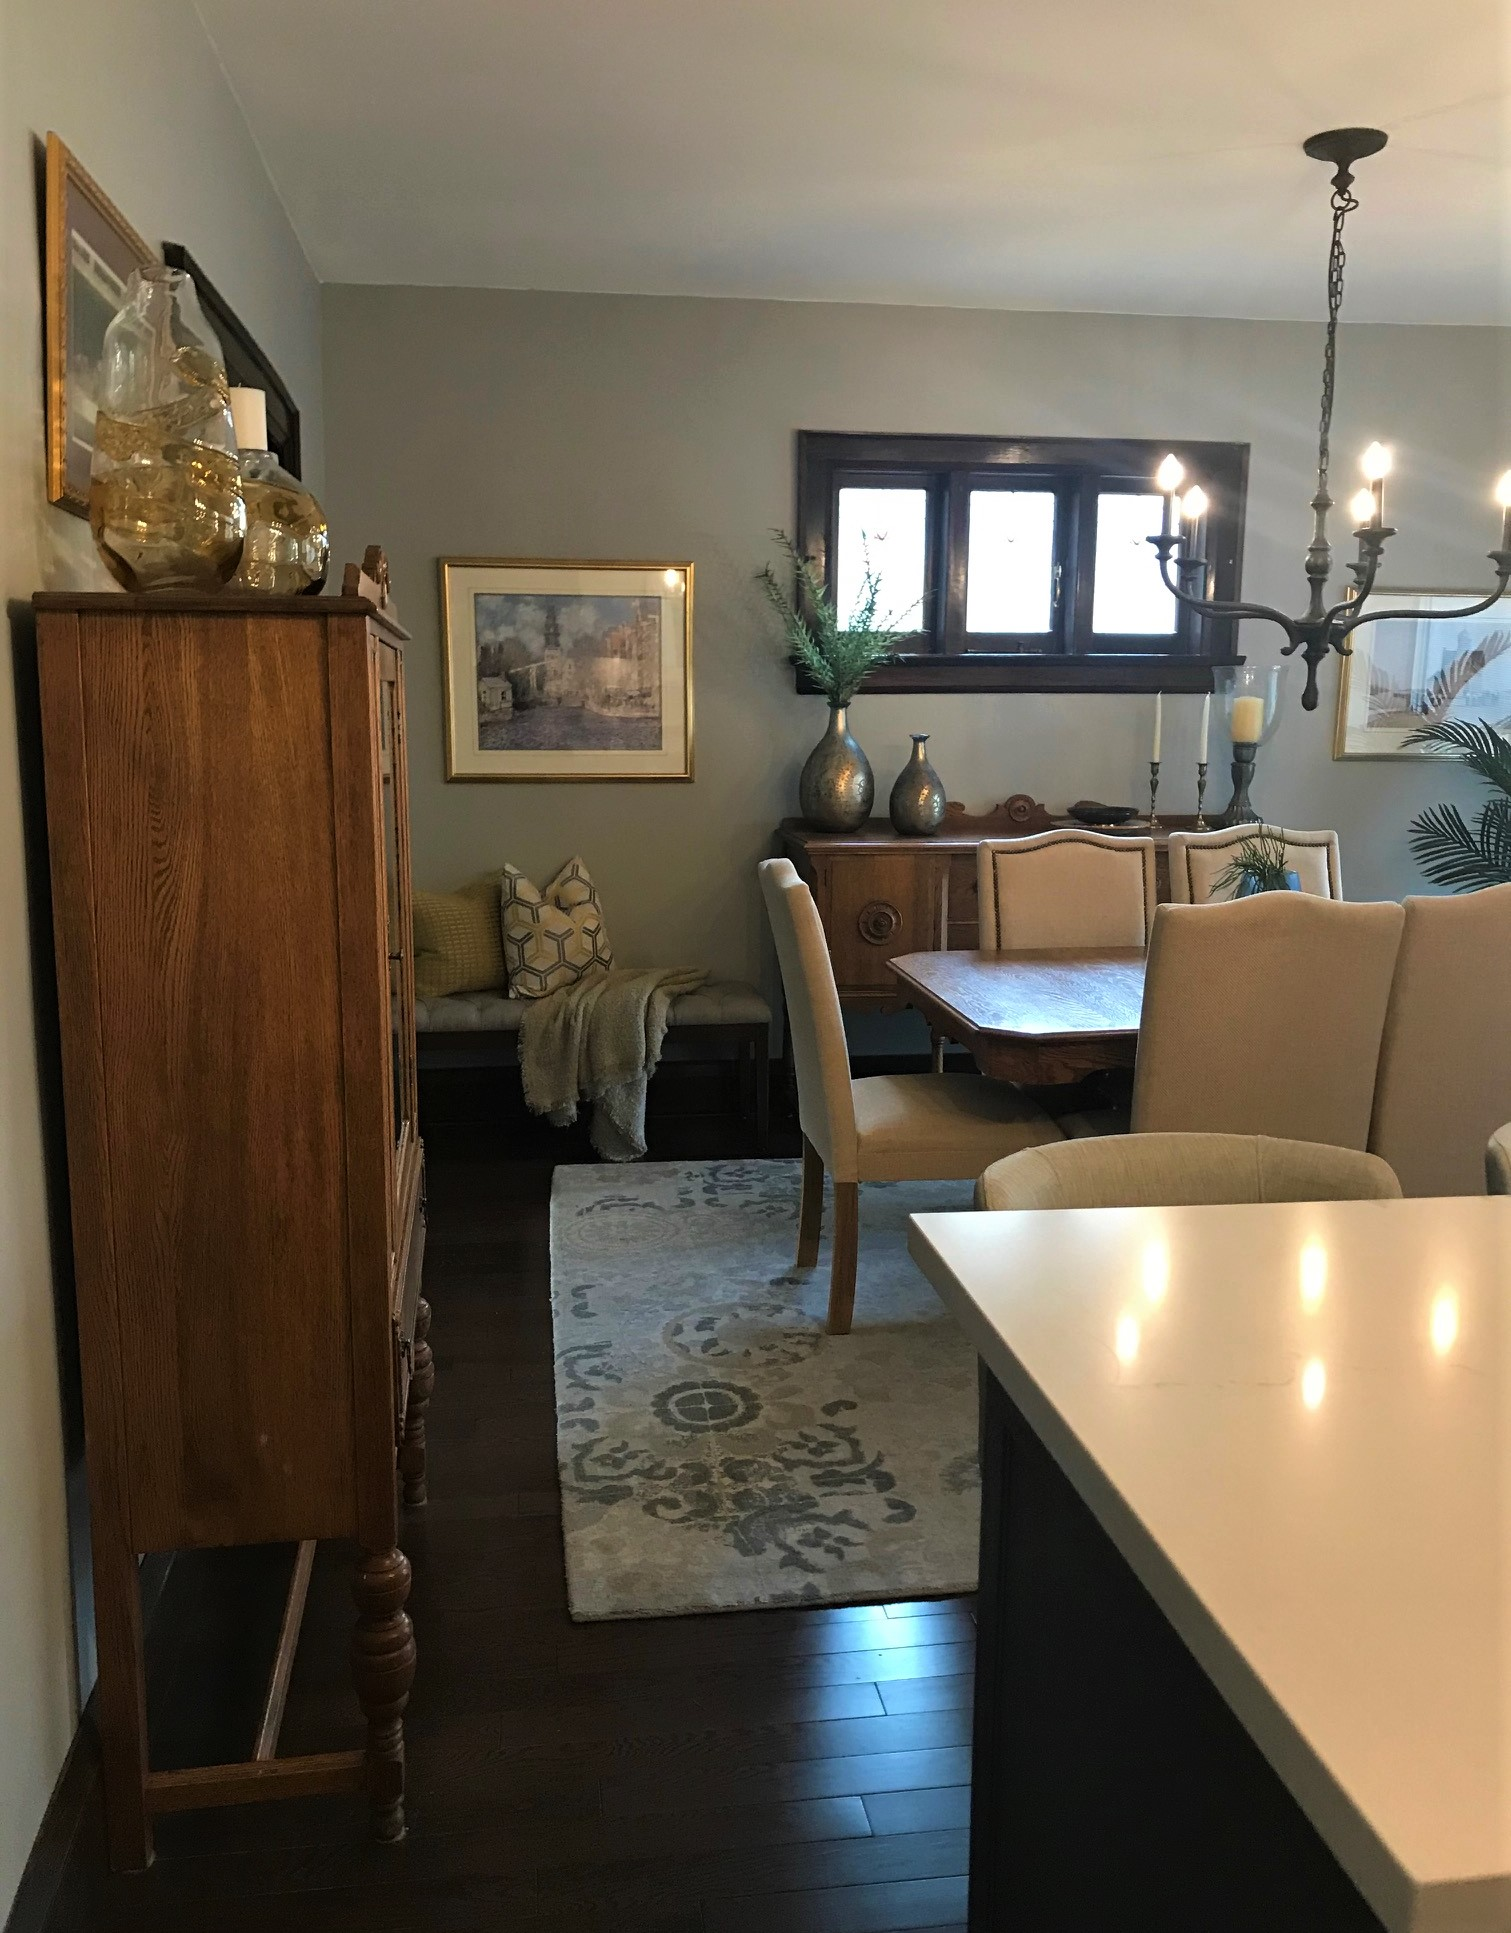 Home Front Redesigns Kennedy Avenue Project Dining Room Photo1